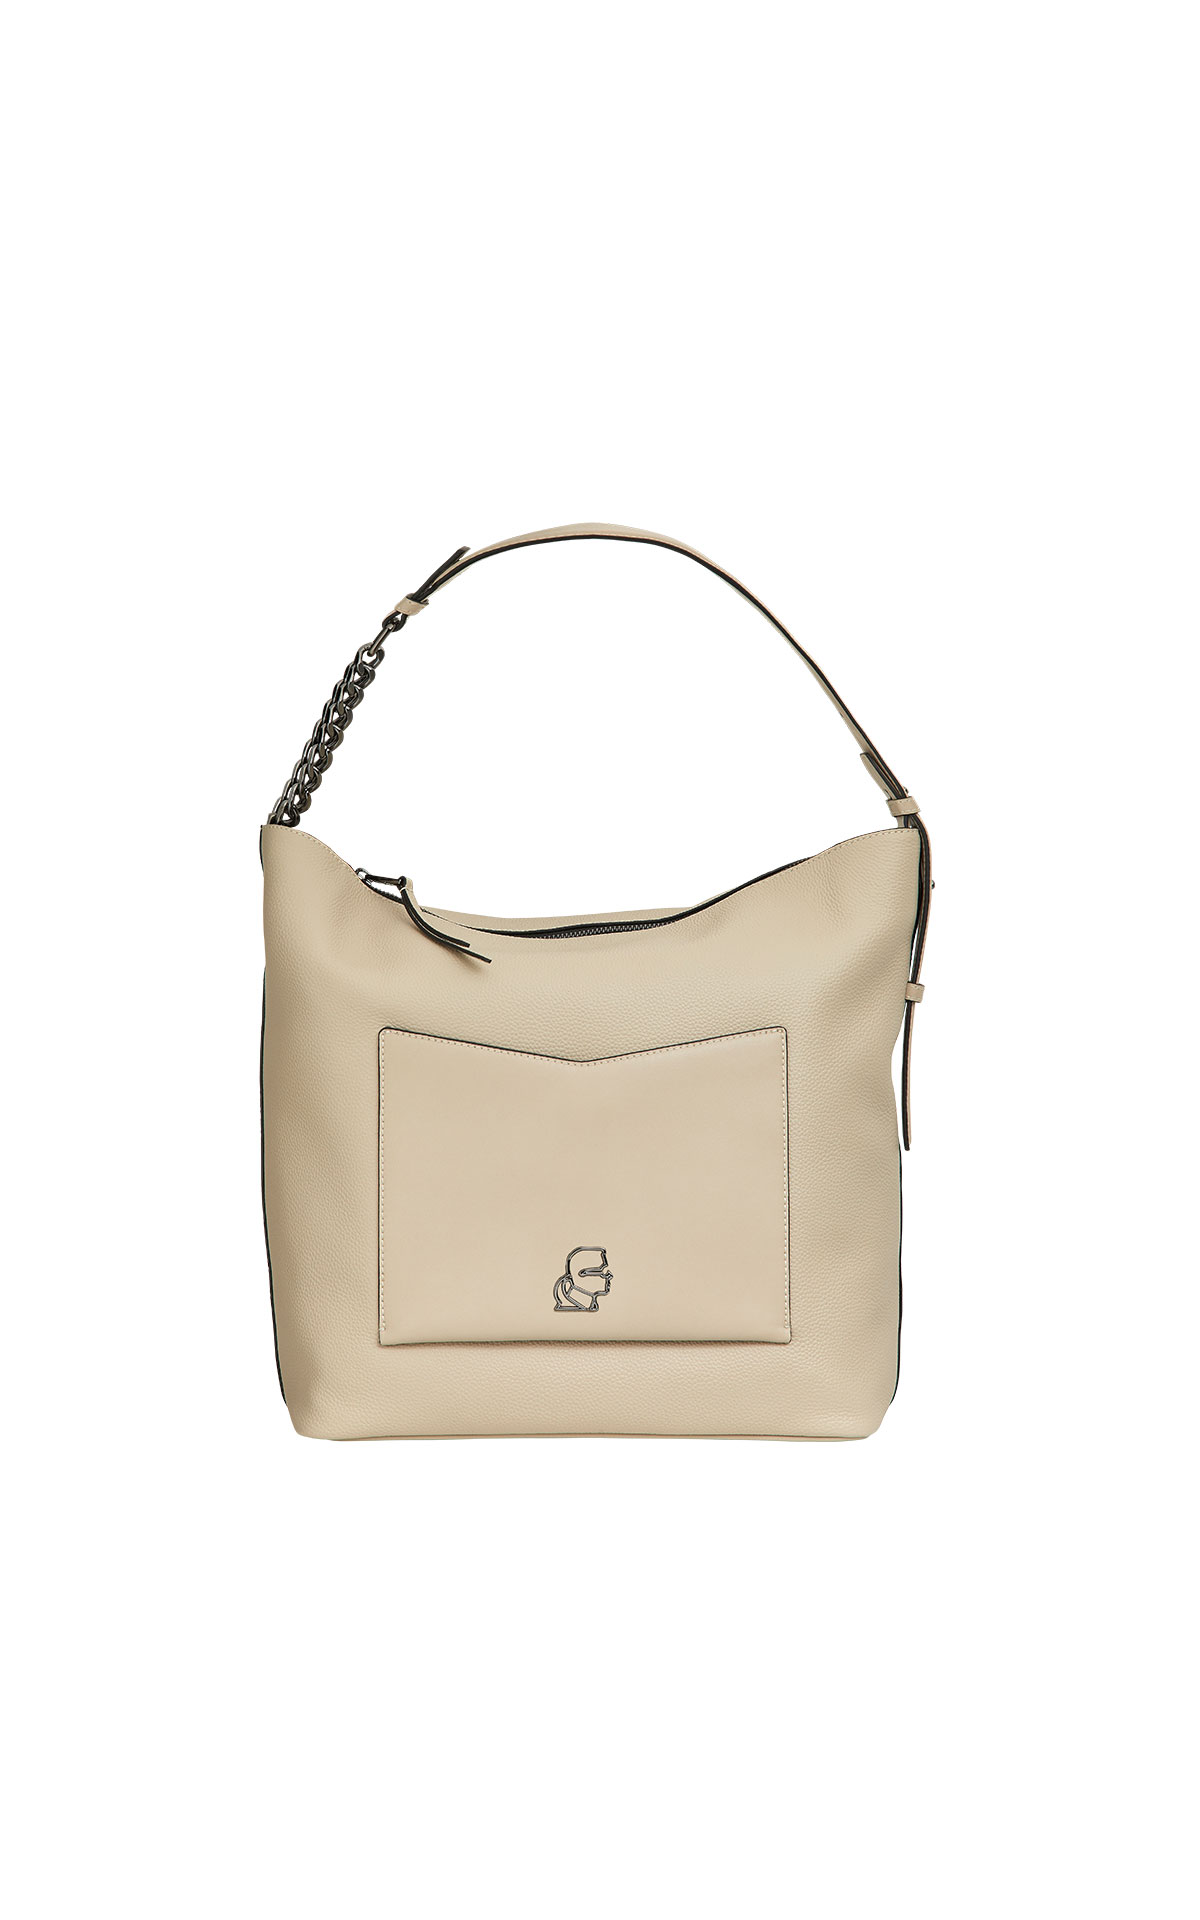 Karl Lagerfeld k/pebble hobo at The Bicester Village Shopping Collection